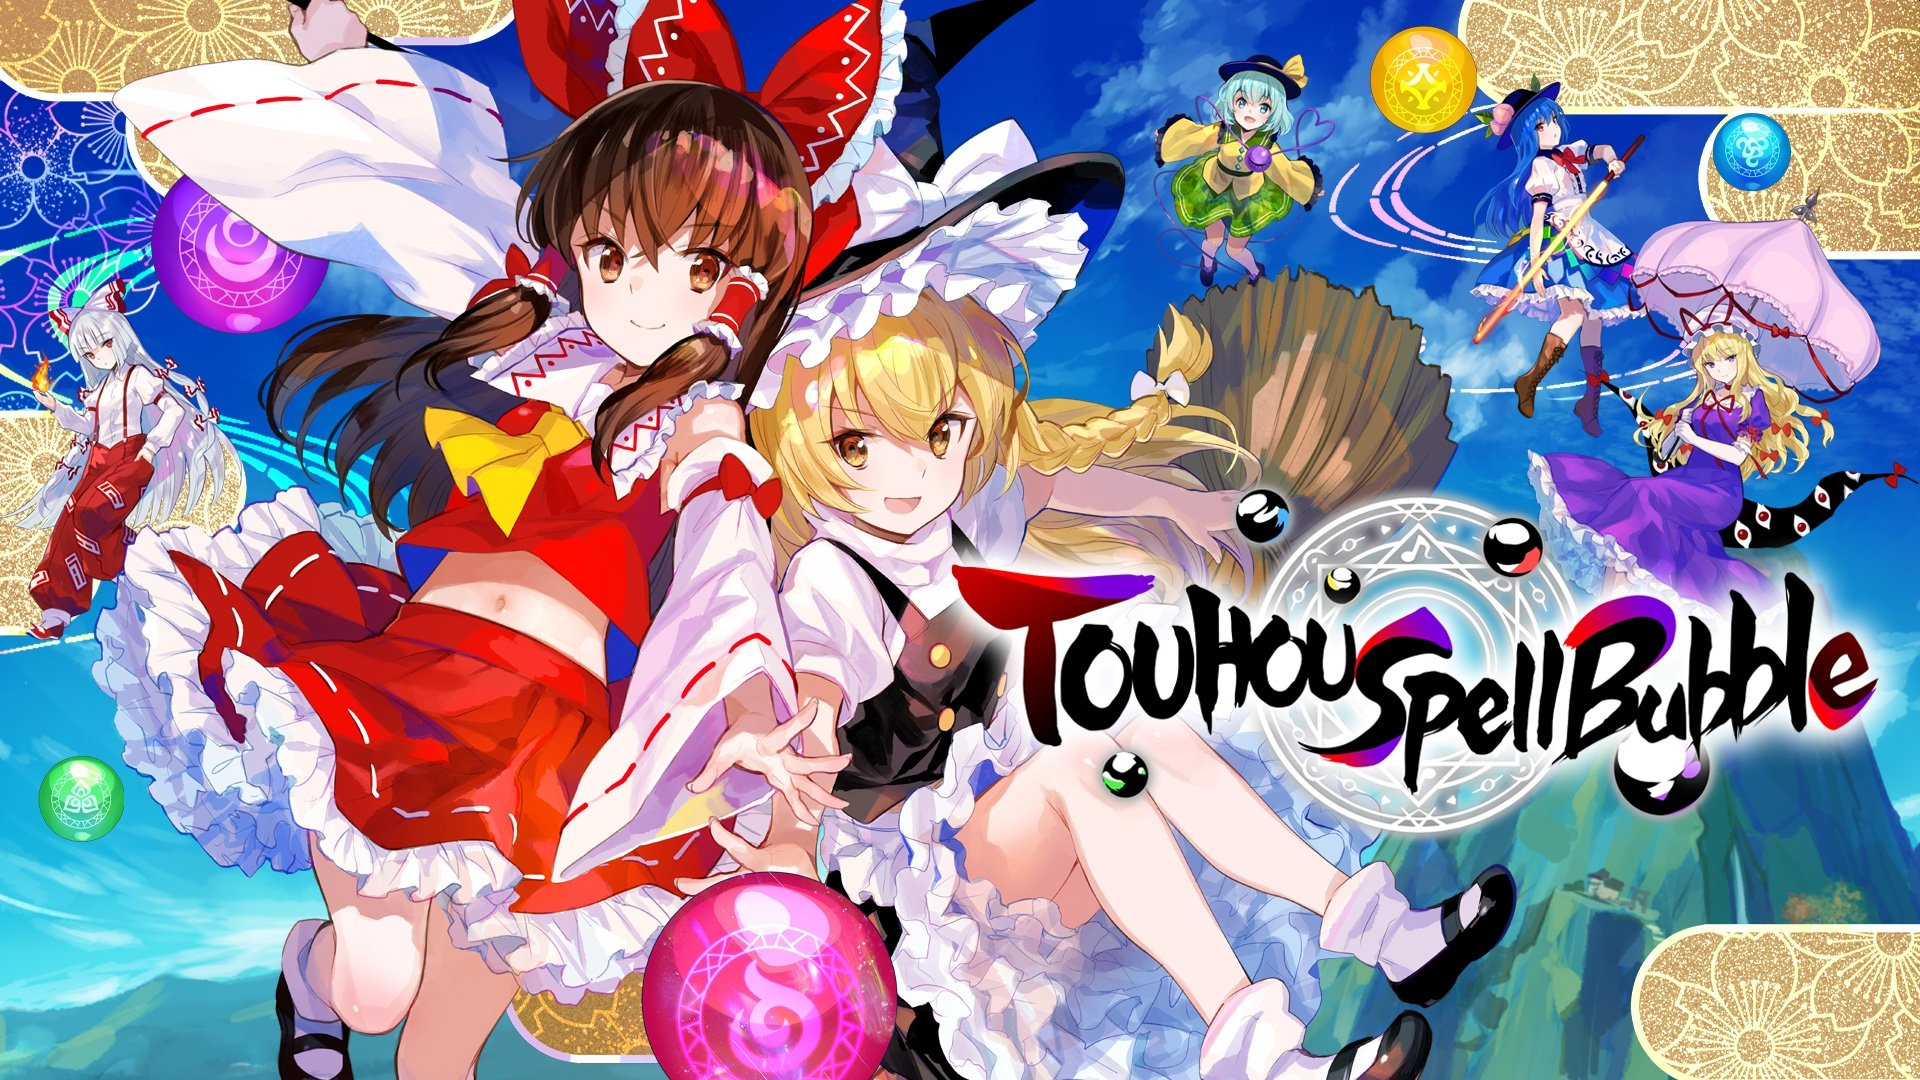 Touhou Spell Bubble Now Available On The Nintendo Switch eShop